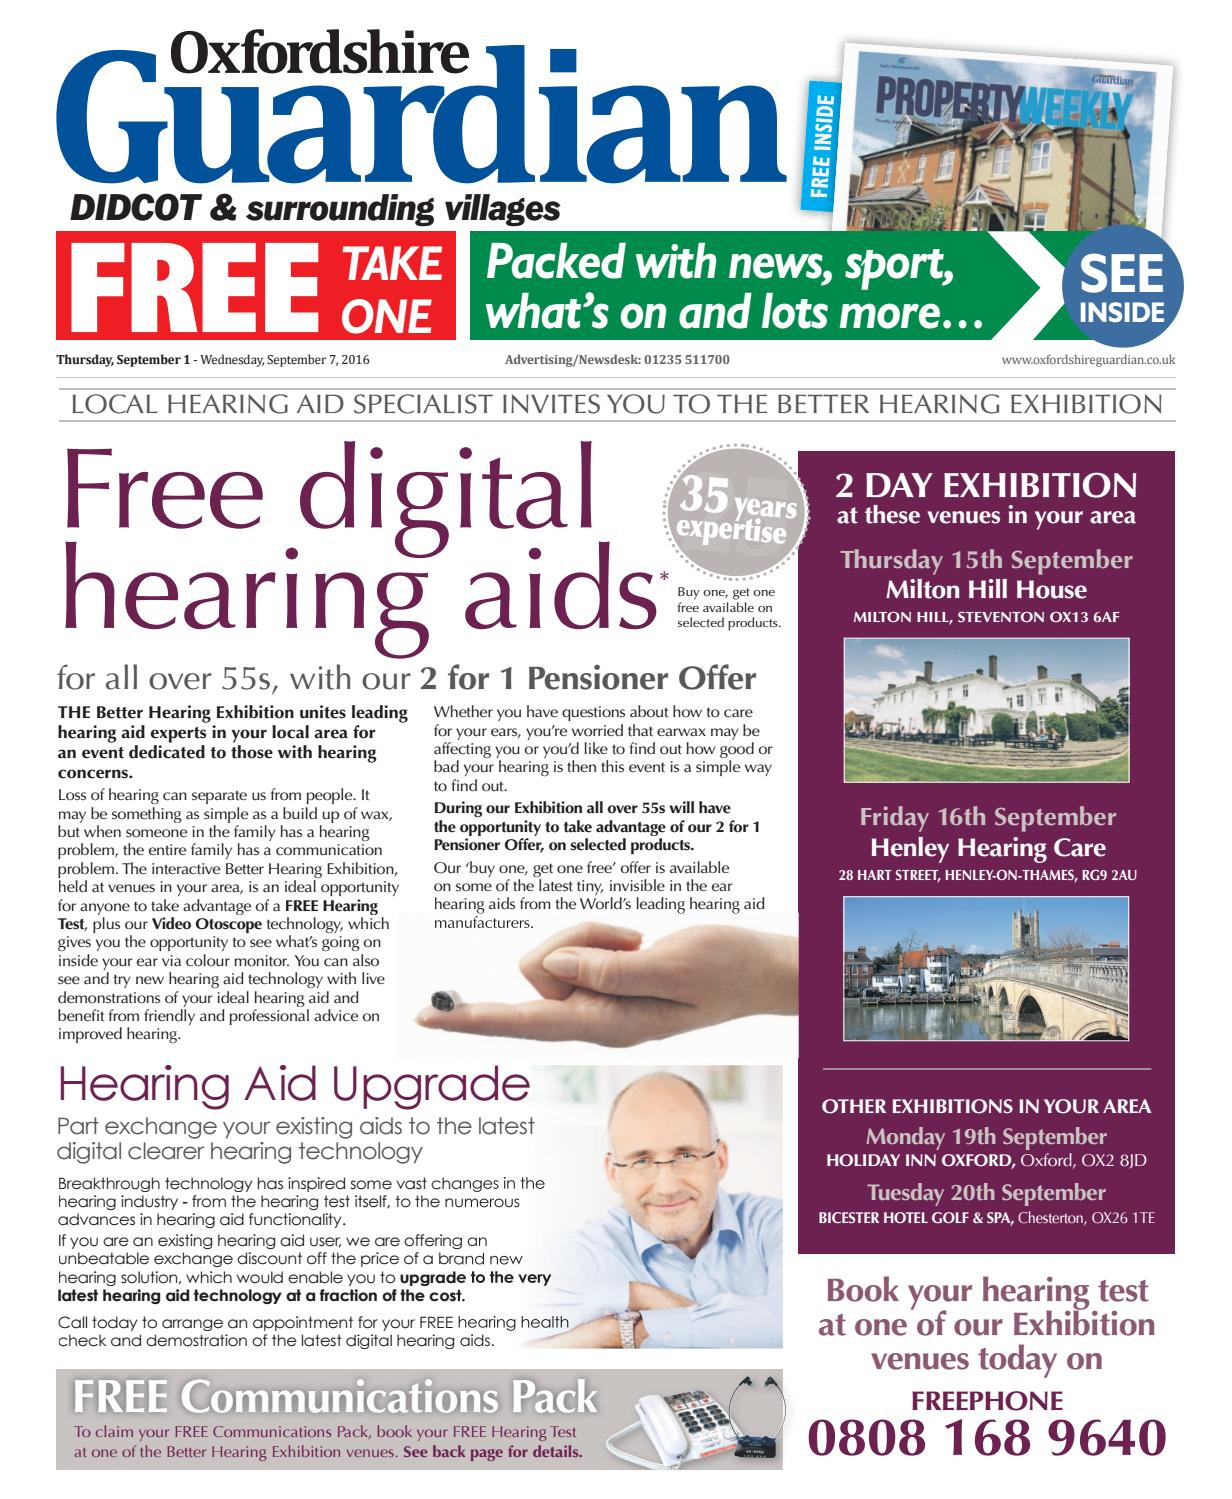 1 september 2016 oxfordshire guardian didcot by Taylor Newspapers - issuu